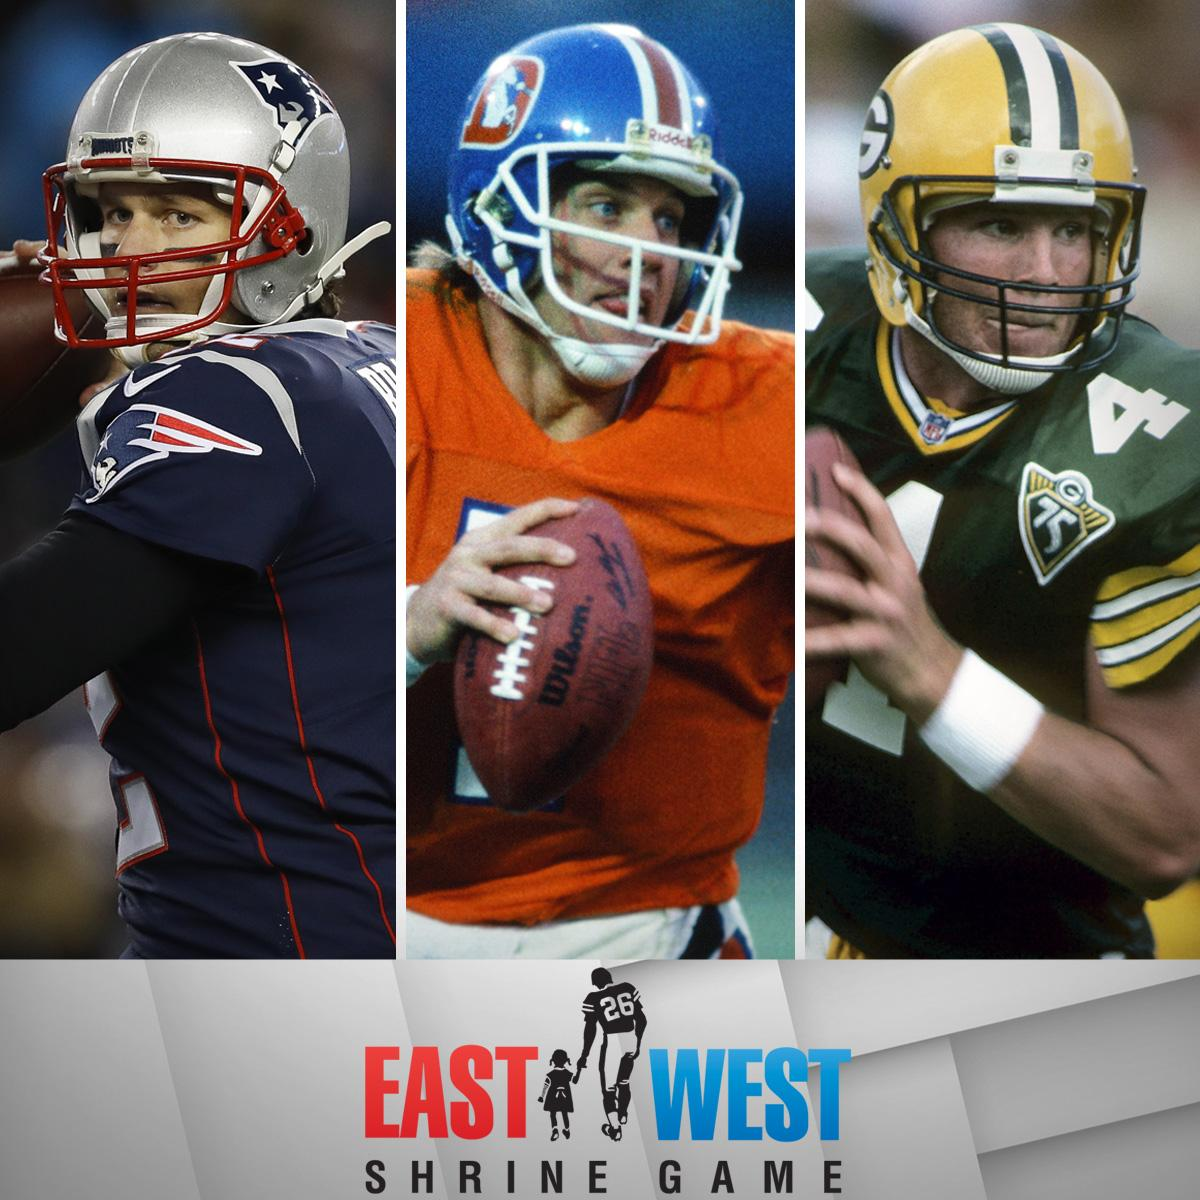 Tom Brady. @johnelway. @Favre4Official.  Just a few of the legendary @Shrine_Game alums.  Tune in for this year's game on @nflnetwork at 3 p.m. ET!